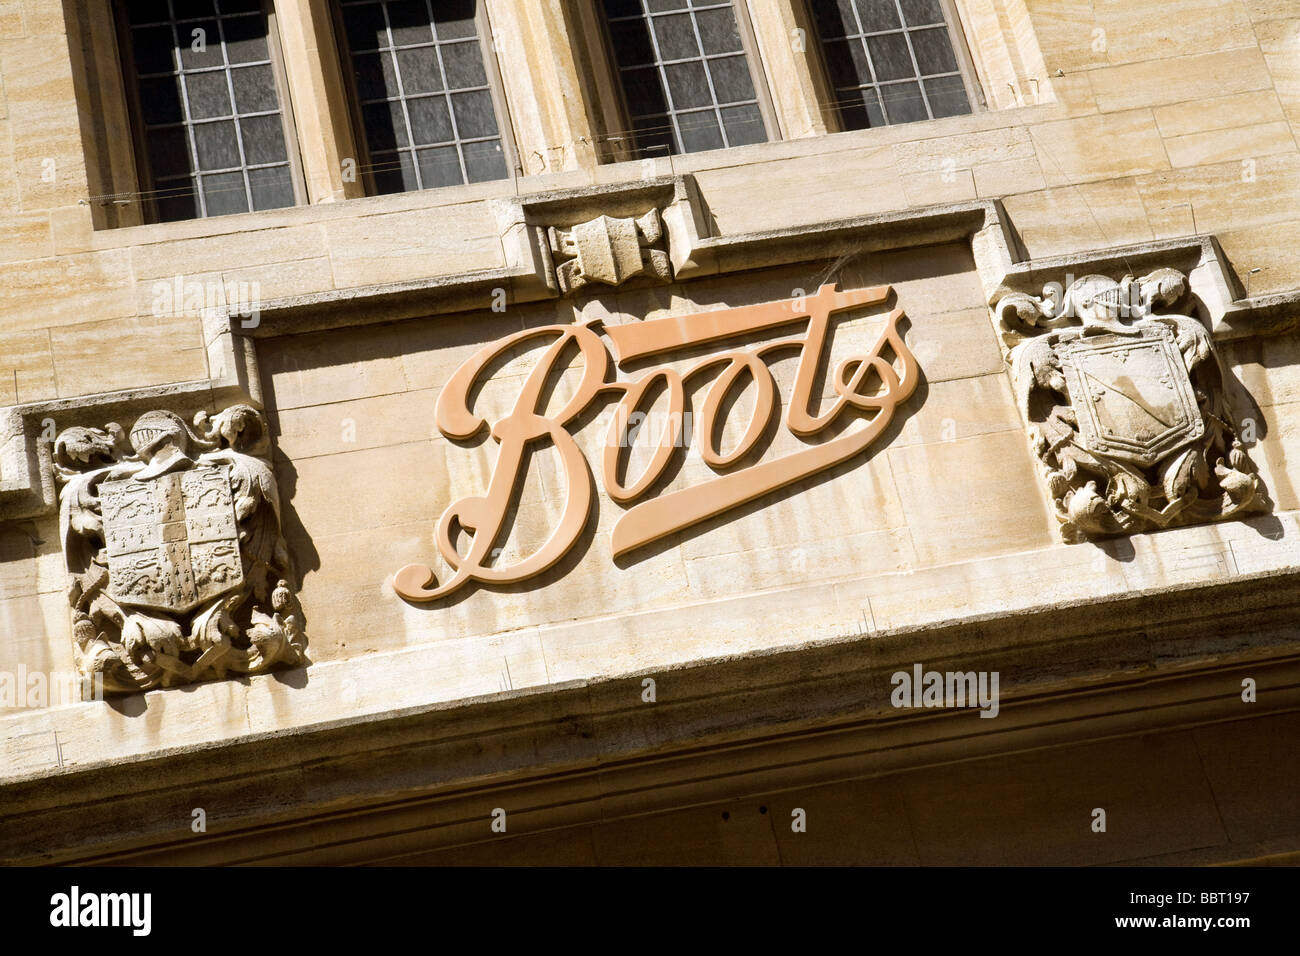 Sign for Boots the Chemist, Cambridge, UK - Stock Image